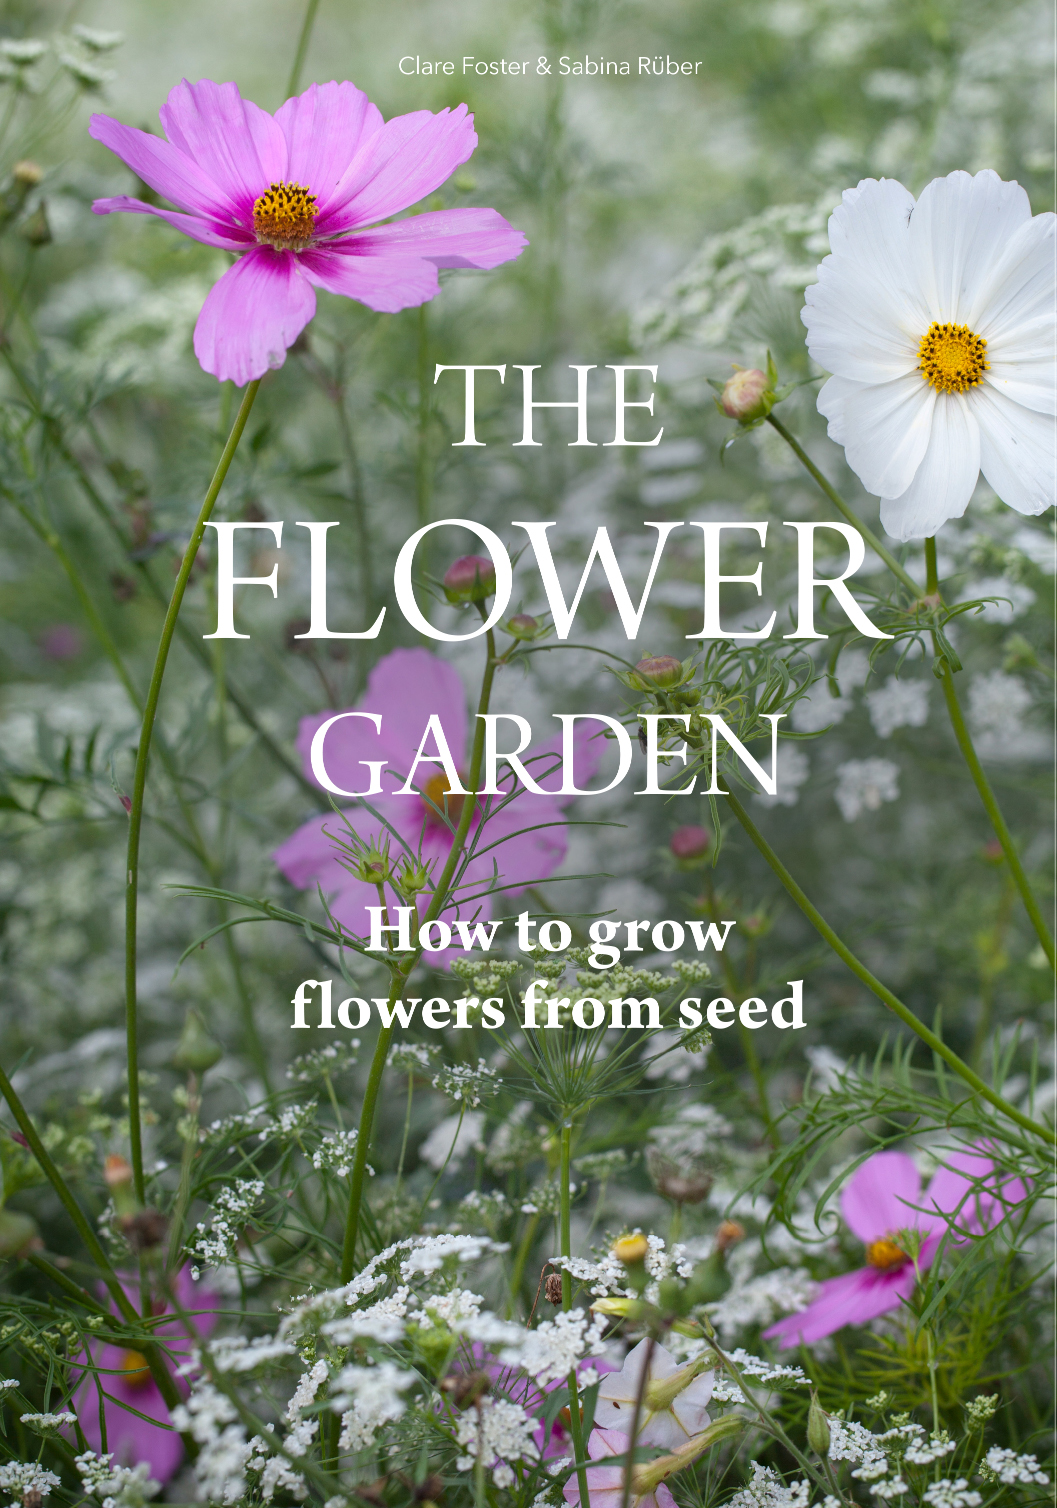 ROSE & IVY In Bloom | A Guide to Growing Flowers from Seeds with Flower Expert Clare Foster